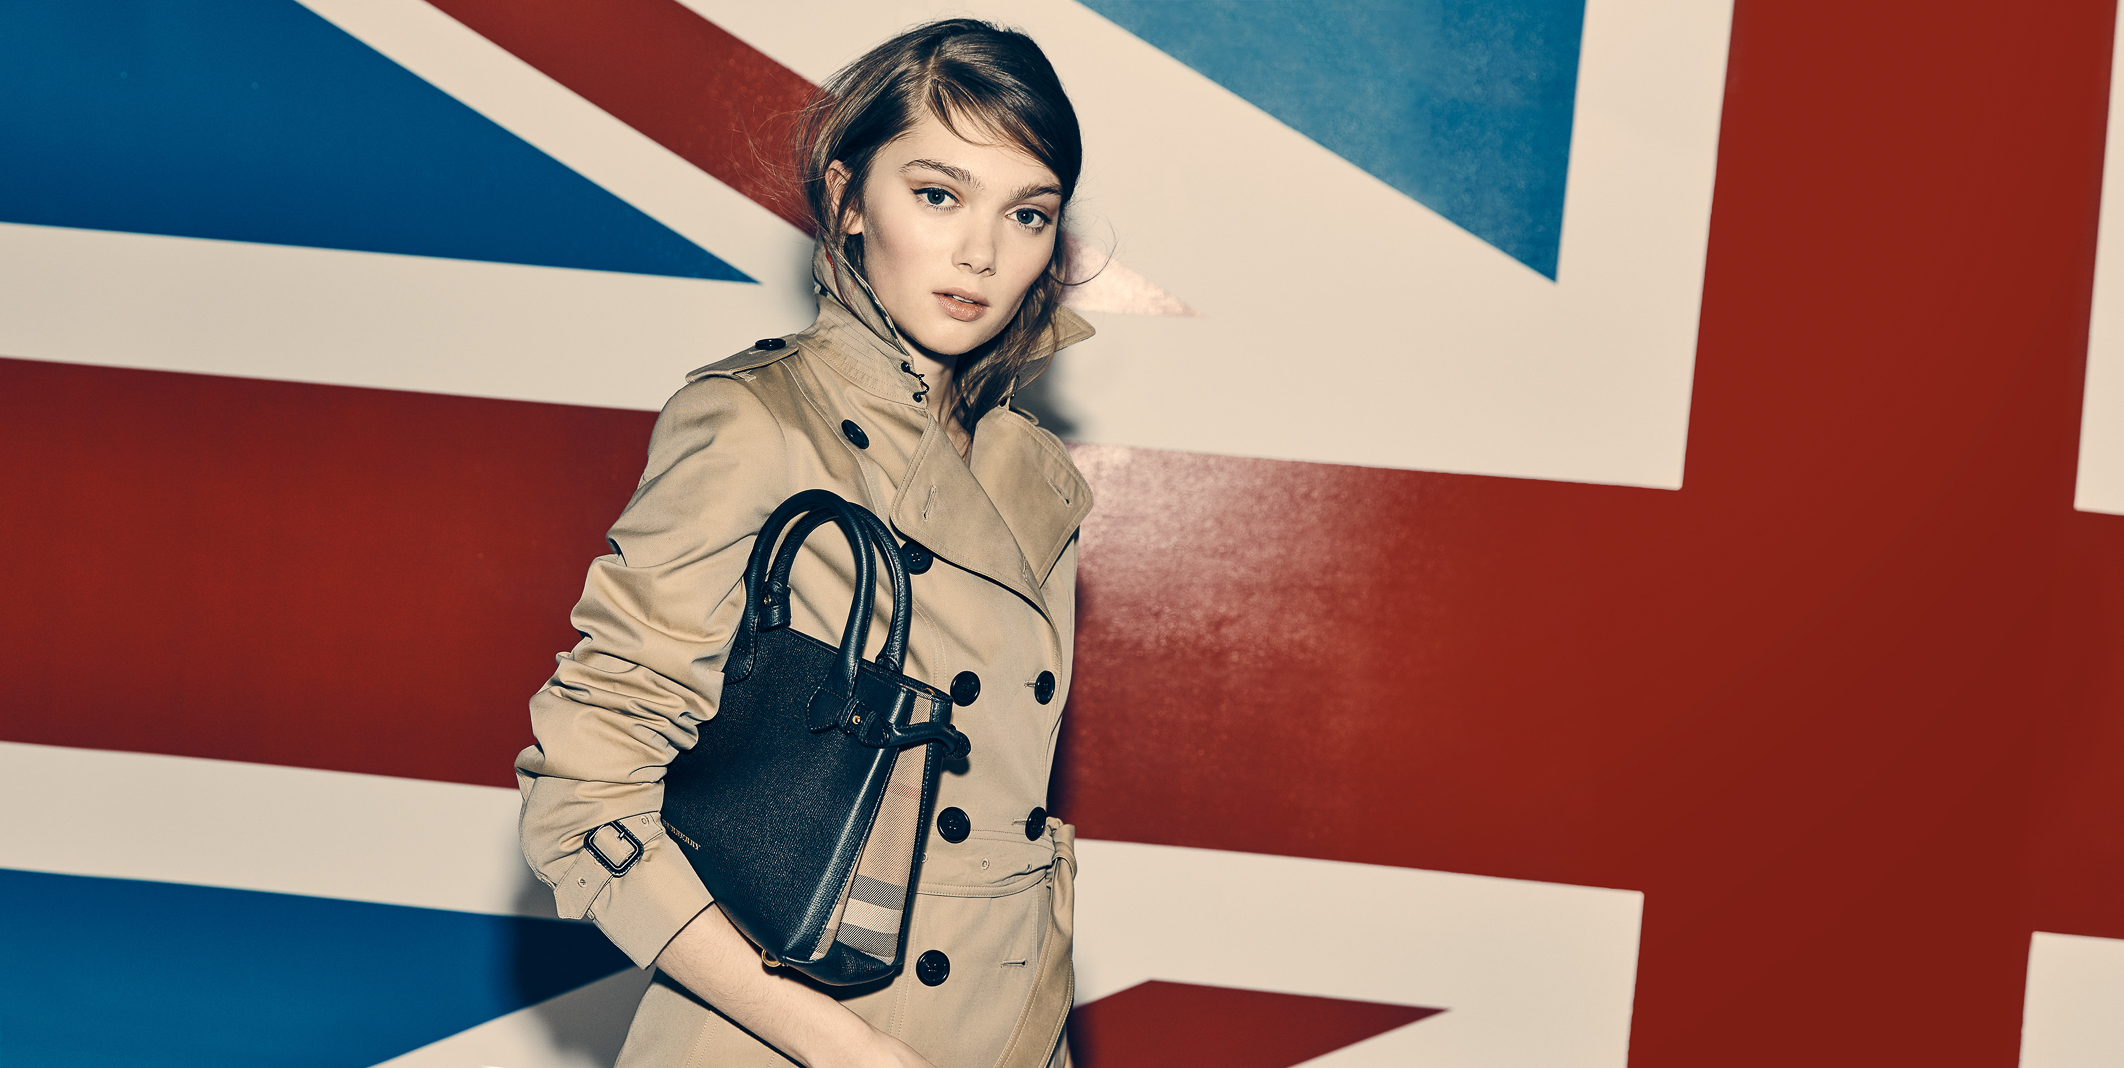 Burberry_WRTW_1137118900_SUPERHERO_EDITORIAL_CAPTURE_096.jpg